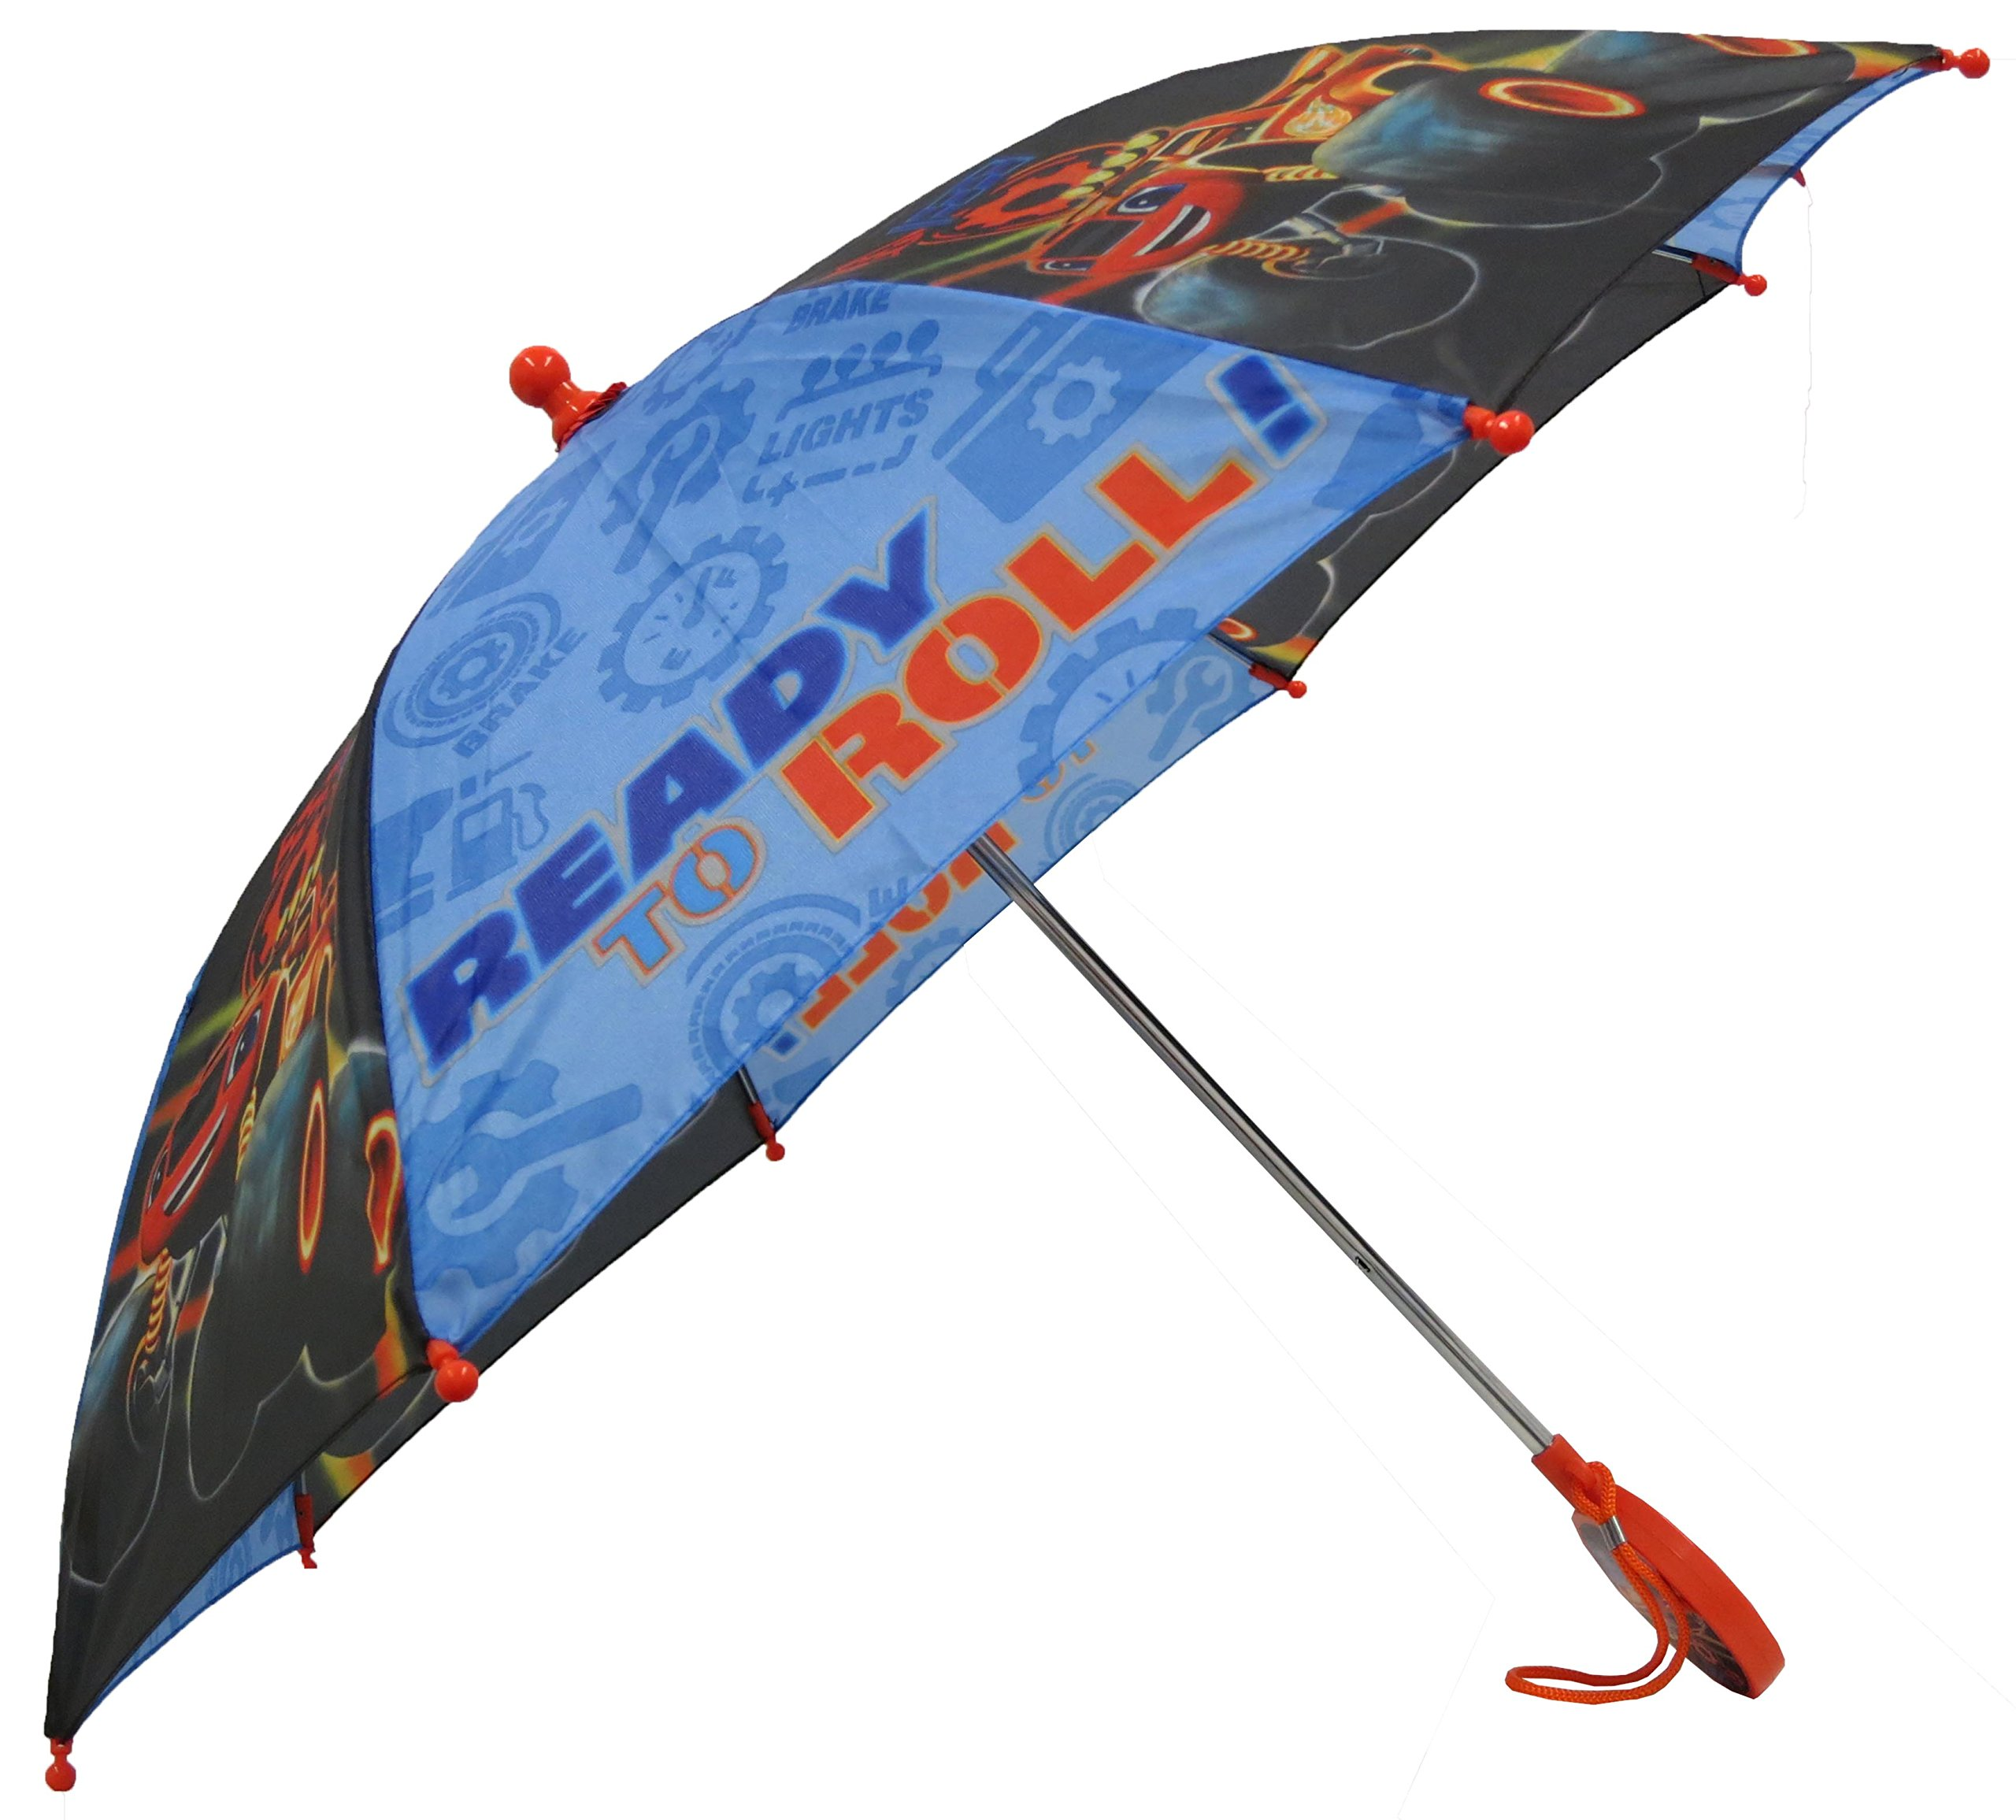 Nickelodeon Little Boys Blaze Character Rainwear Umbrella, Black/Blue, Age 3-7 by Nickelodeon (Image #2)